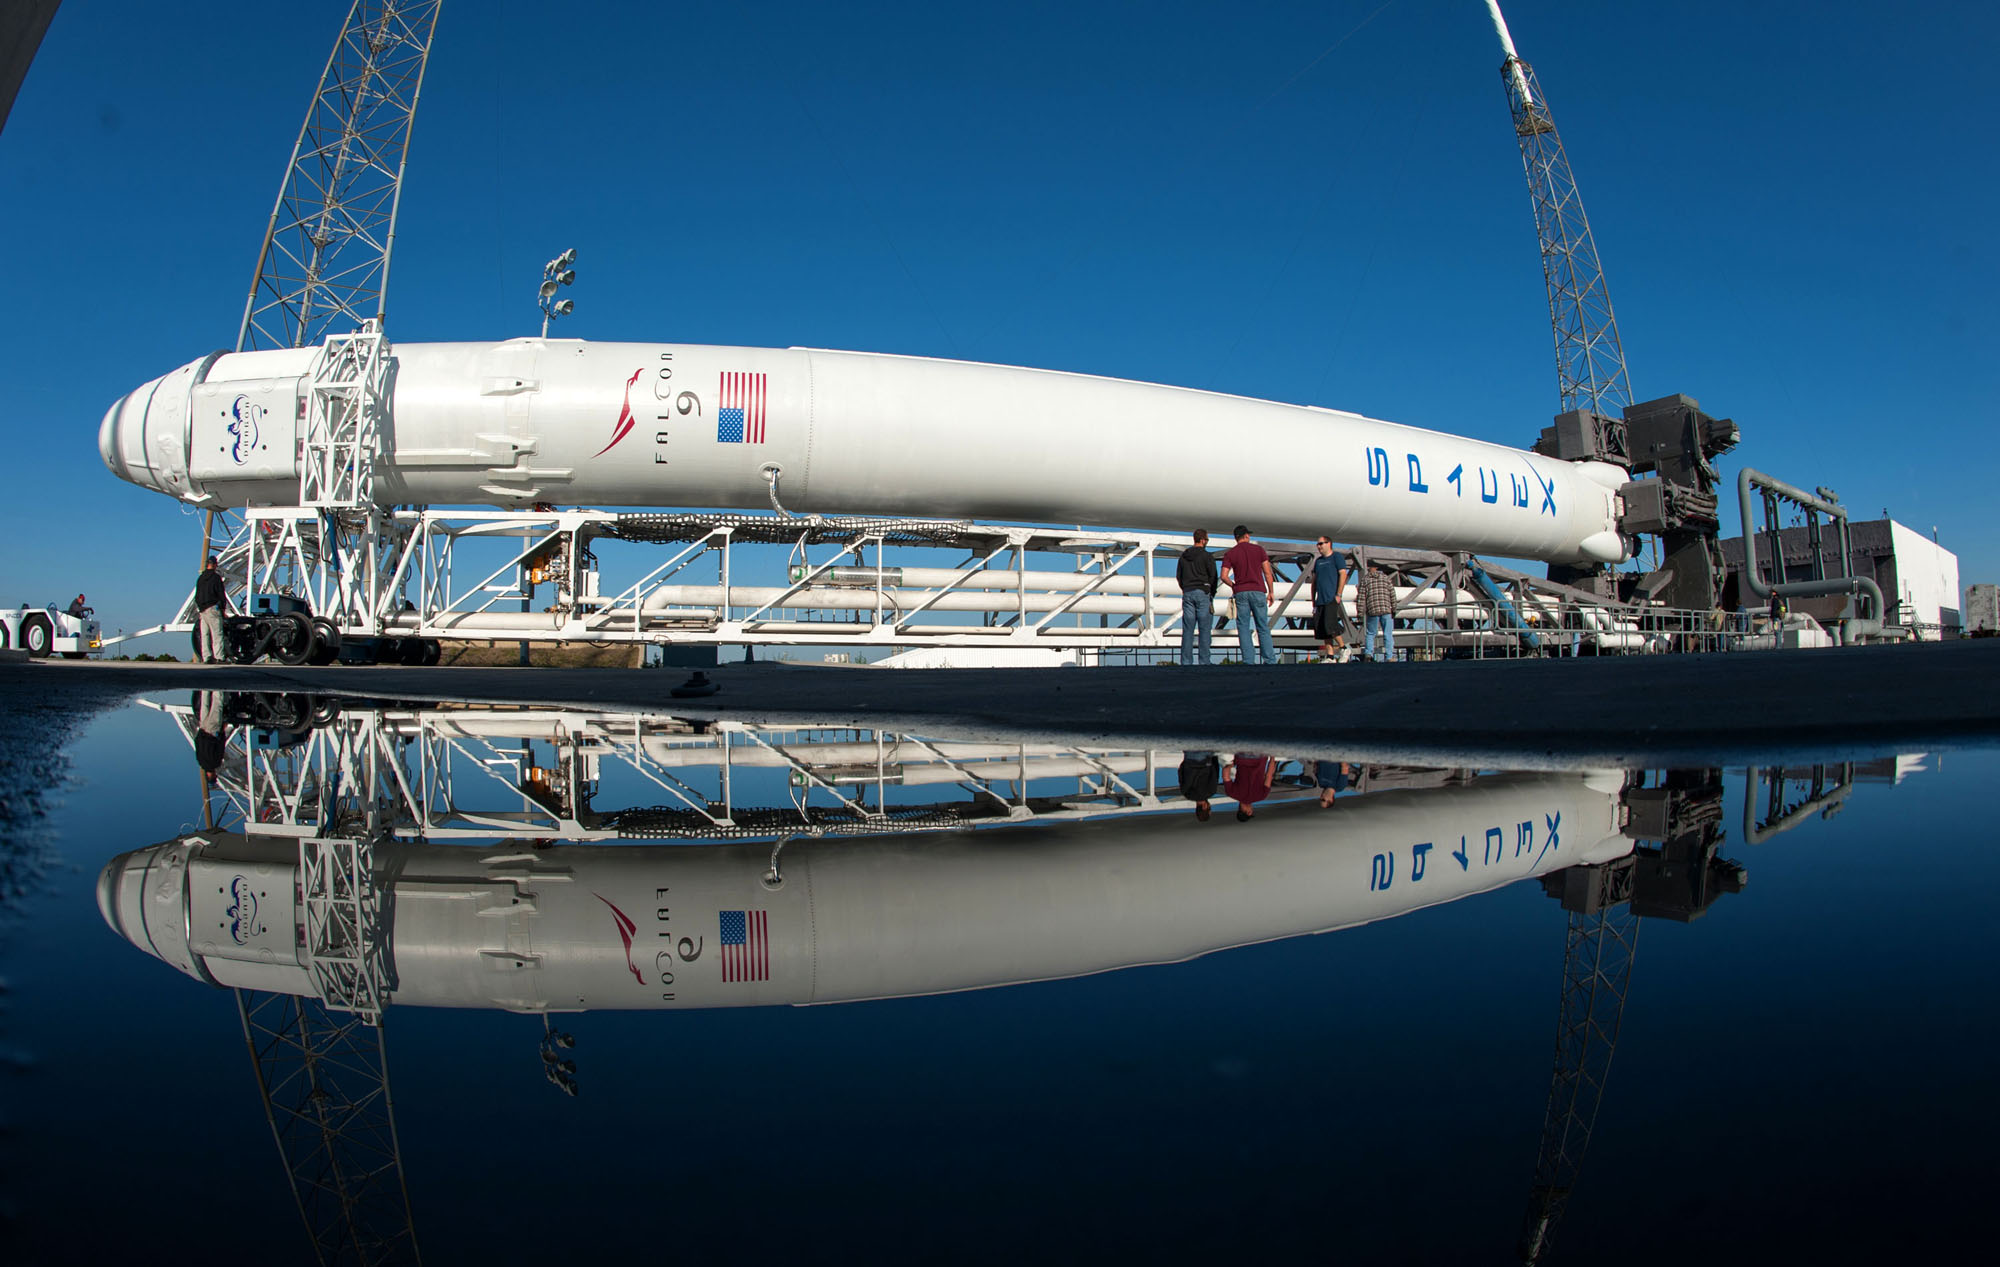 SpaceX's Debut Rocket Launch from California Will Include Reusability Test